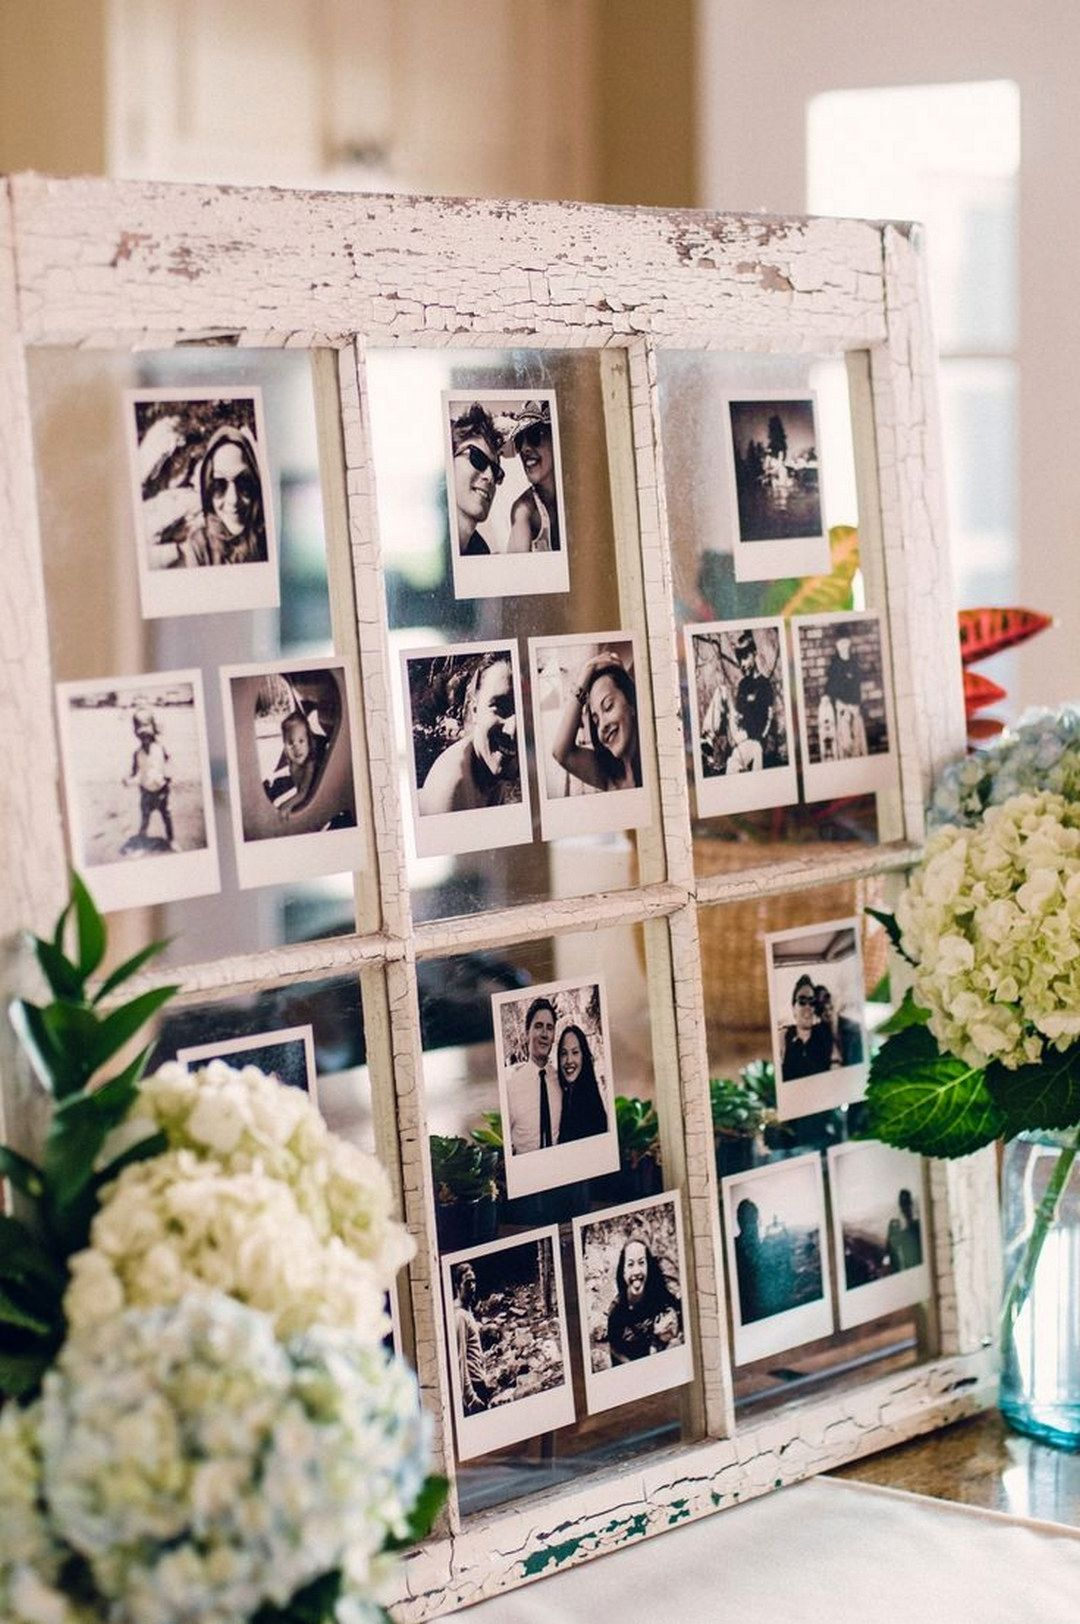 113 beautiful polaroid photos display ideas polaroid - Mur photo polaroid ...